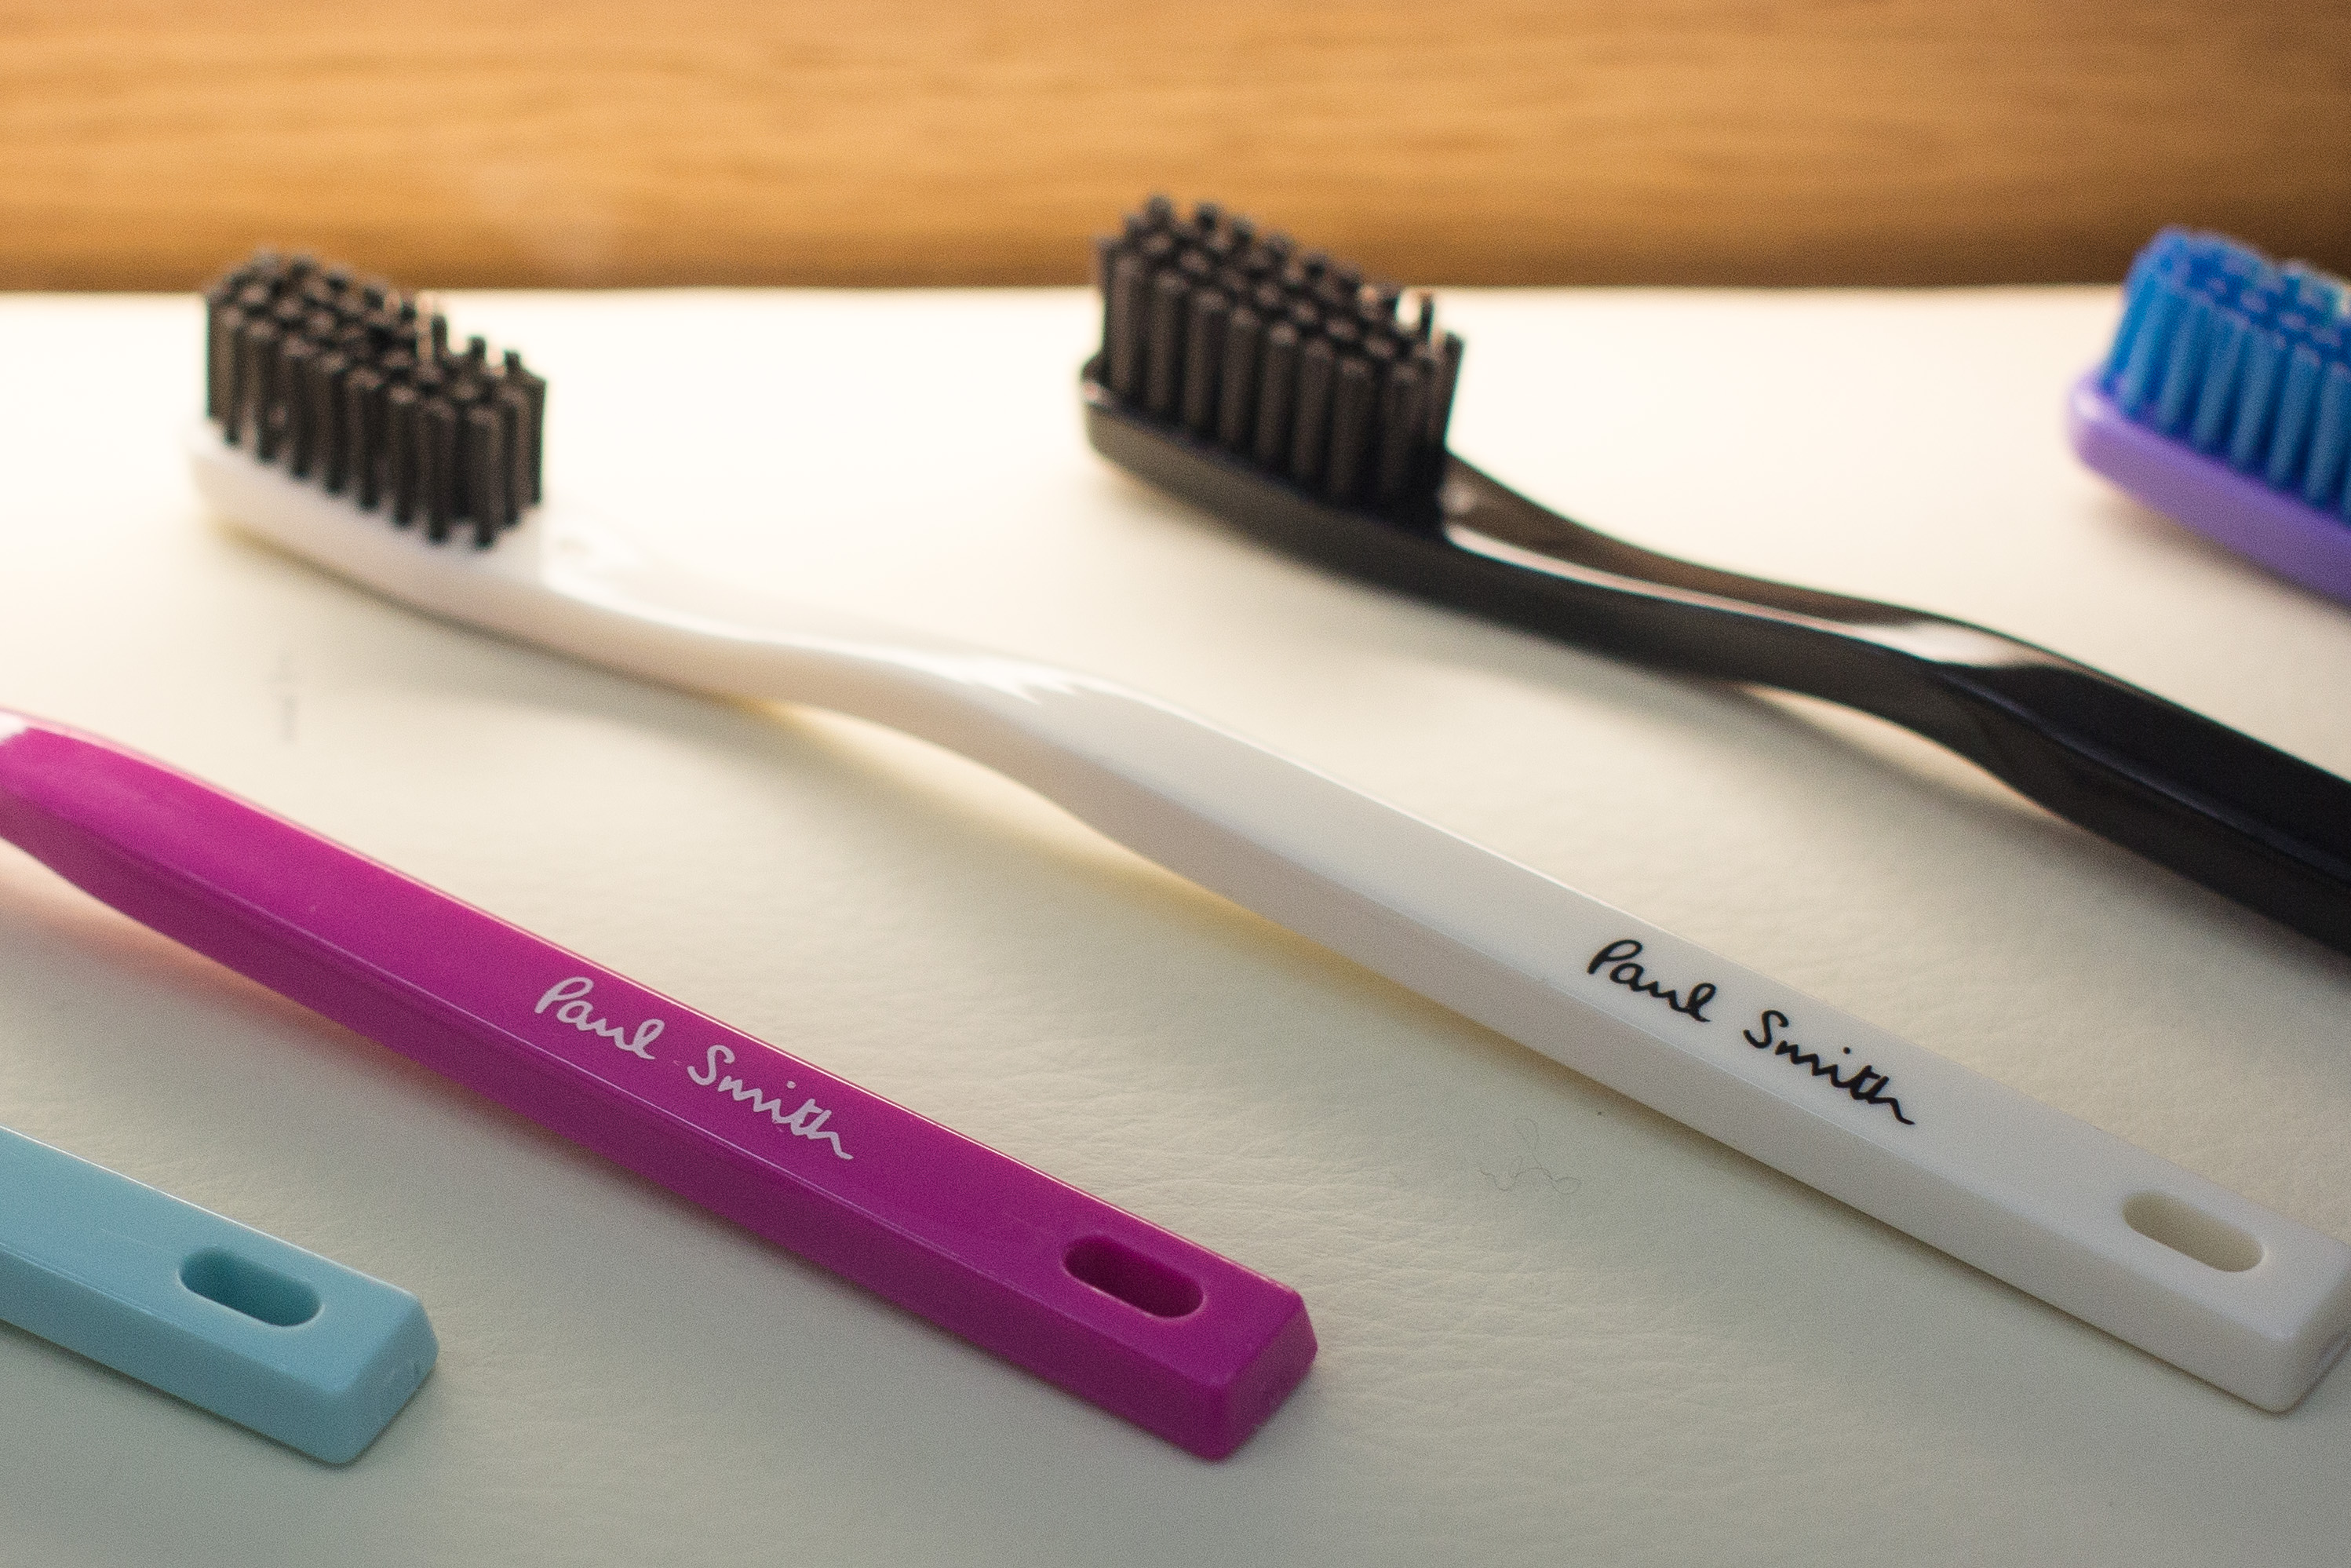 Paul Smith toothbrushes